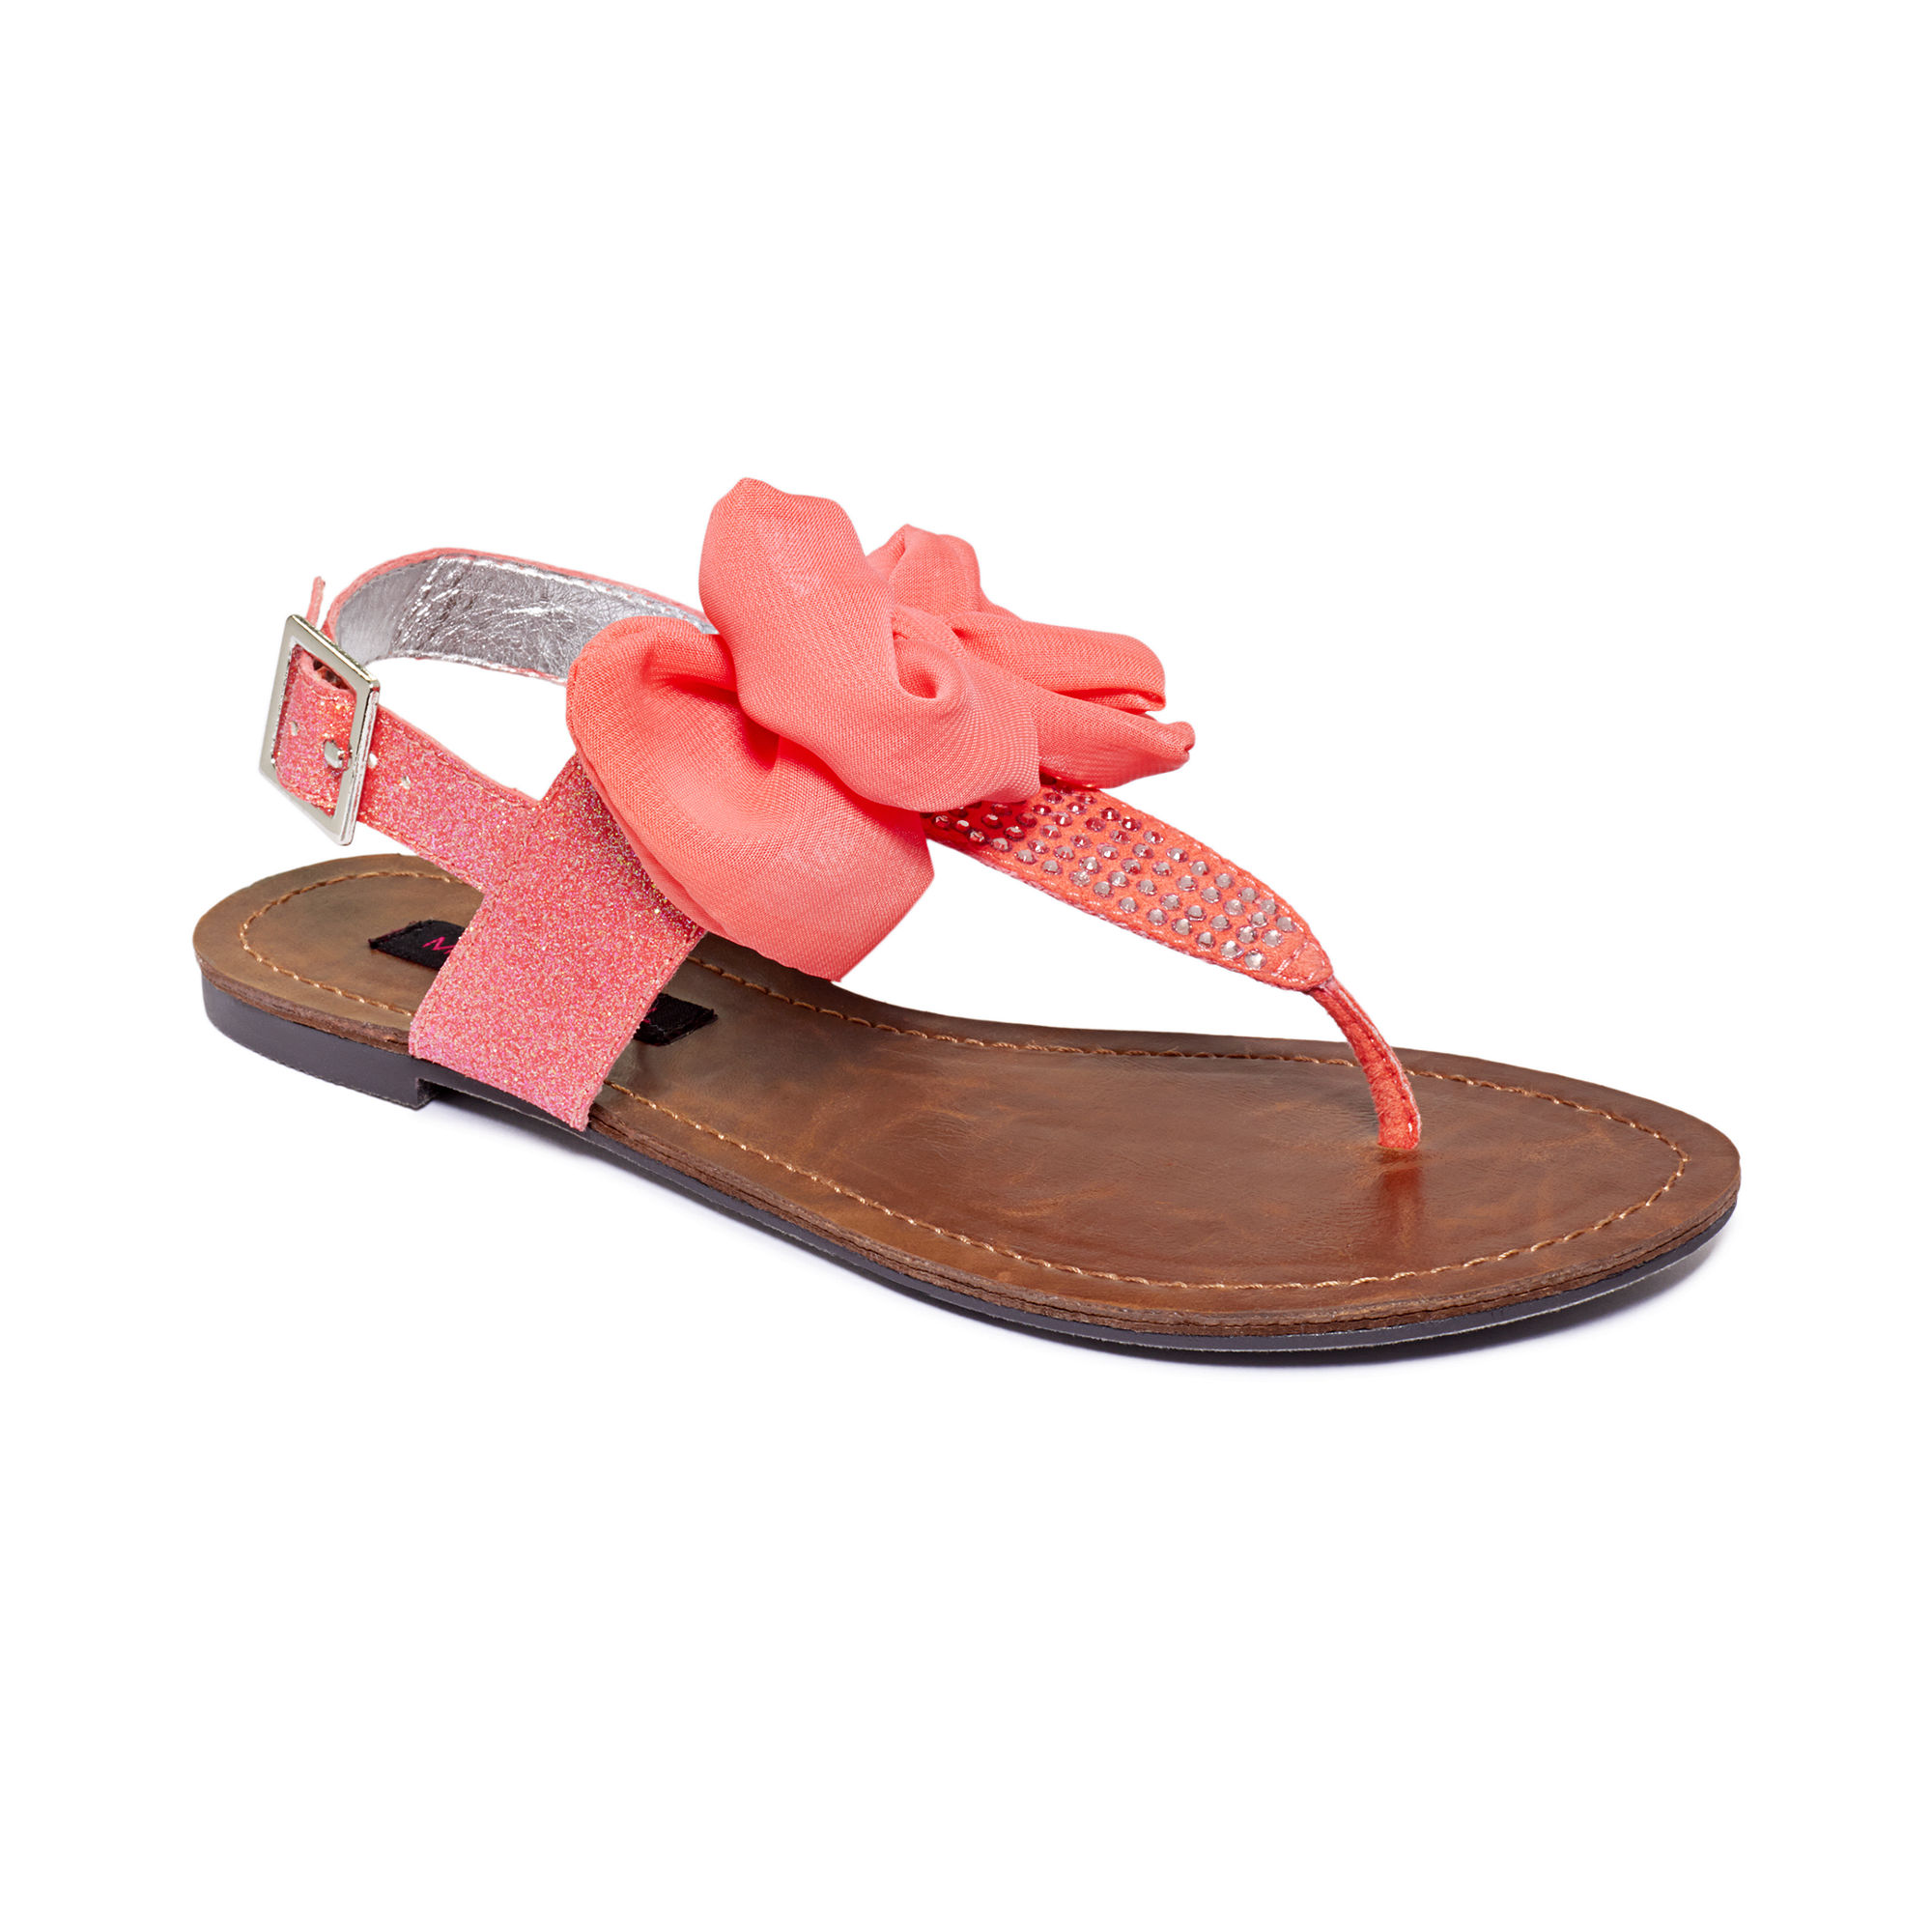 Material Girl Solar Flat Thong Sandals in Pink (black